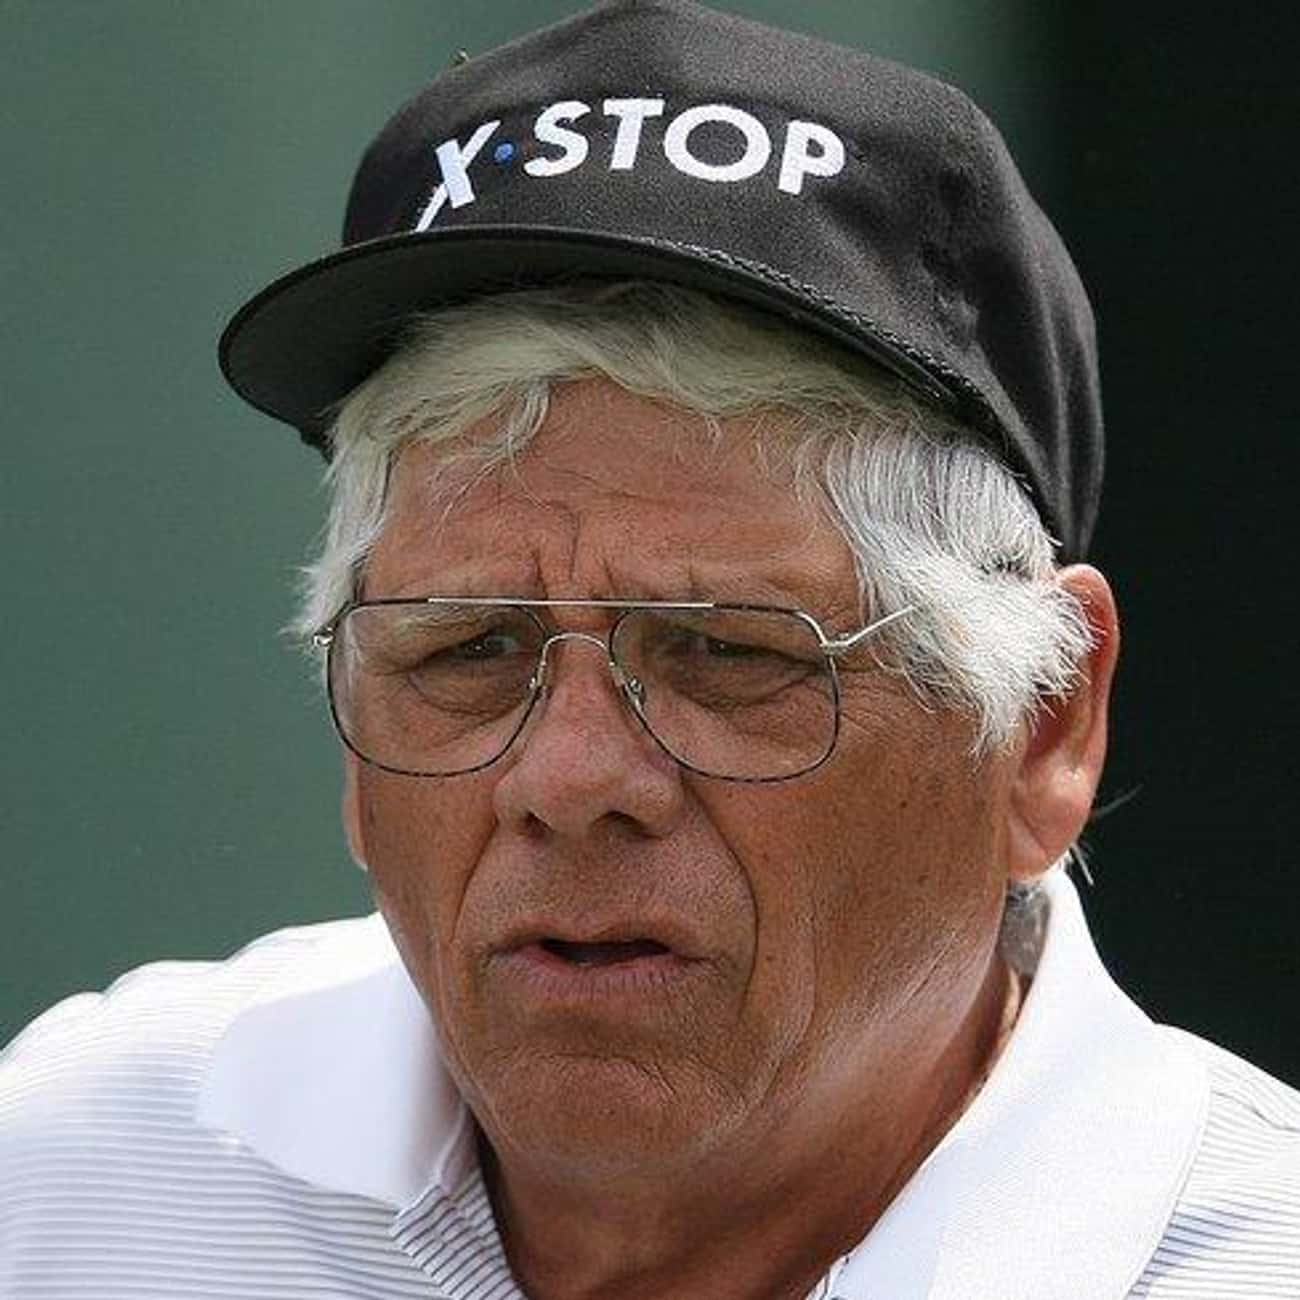 Lee Trevino is listed (or ranked) 1 on the list Famous Hispanic Golfers